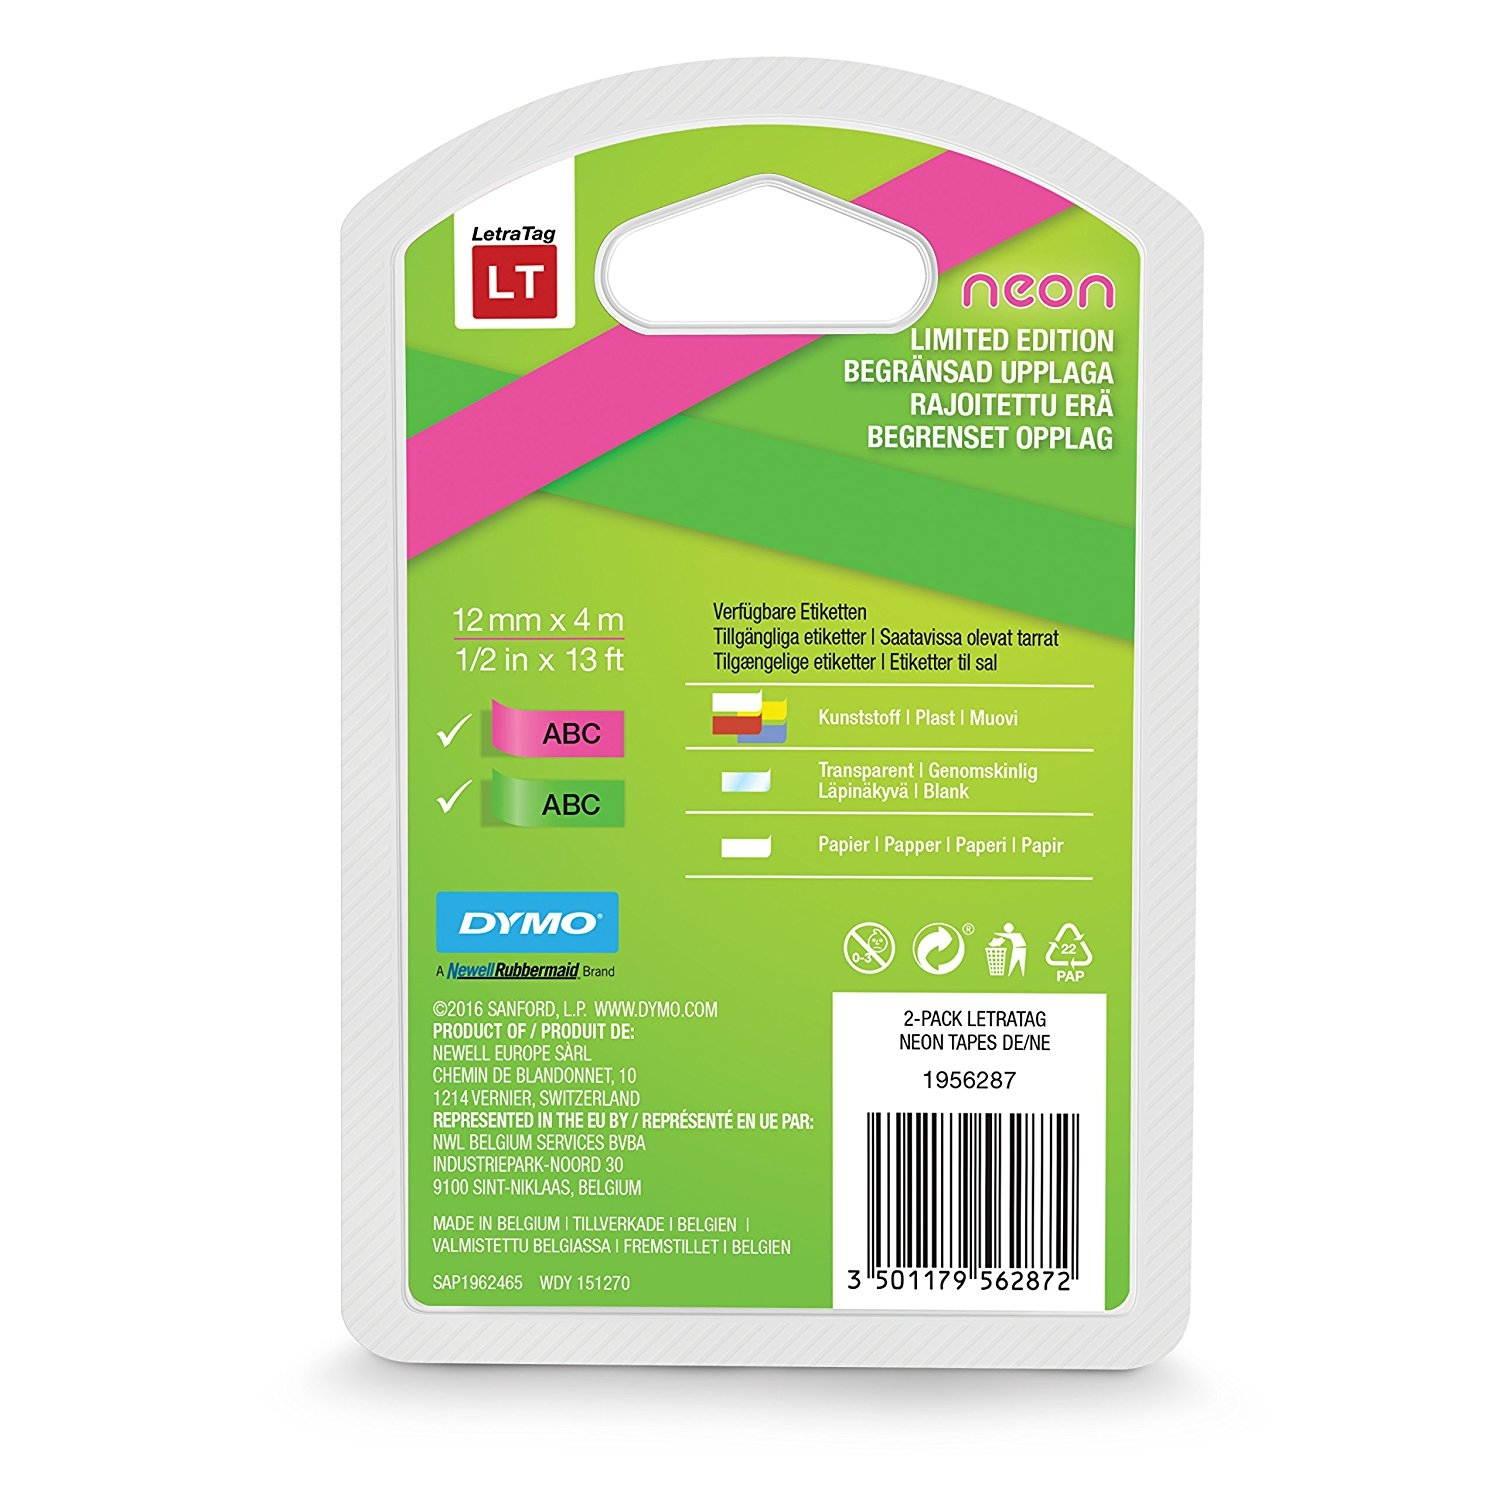 DYMO LetraTag Labelling Tape, 12mmx4m, multipack assorted, Neon, 1956290